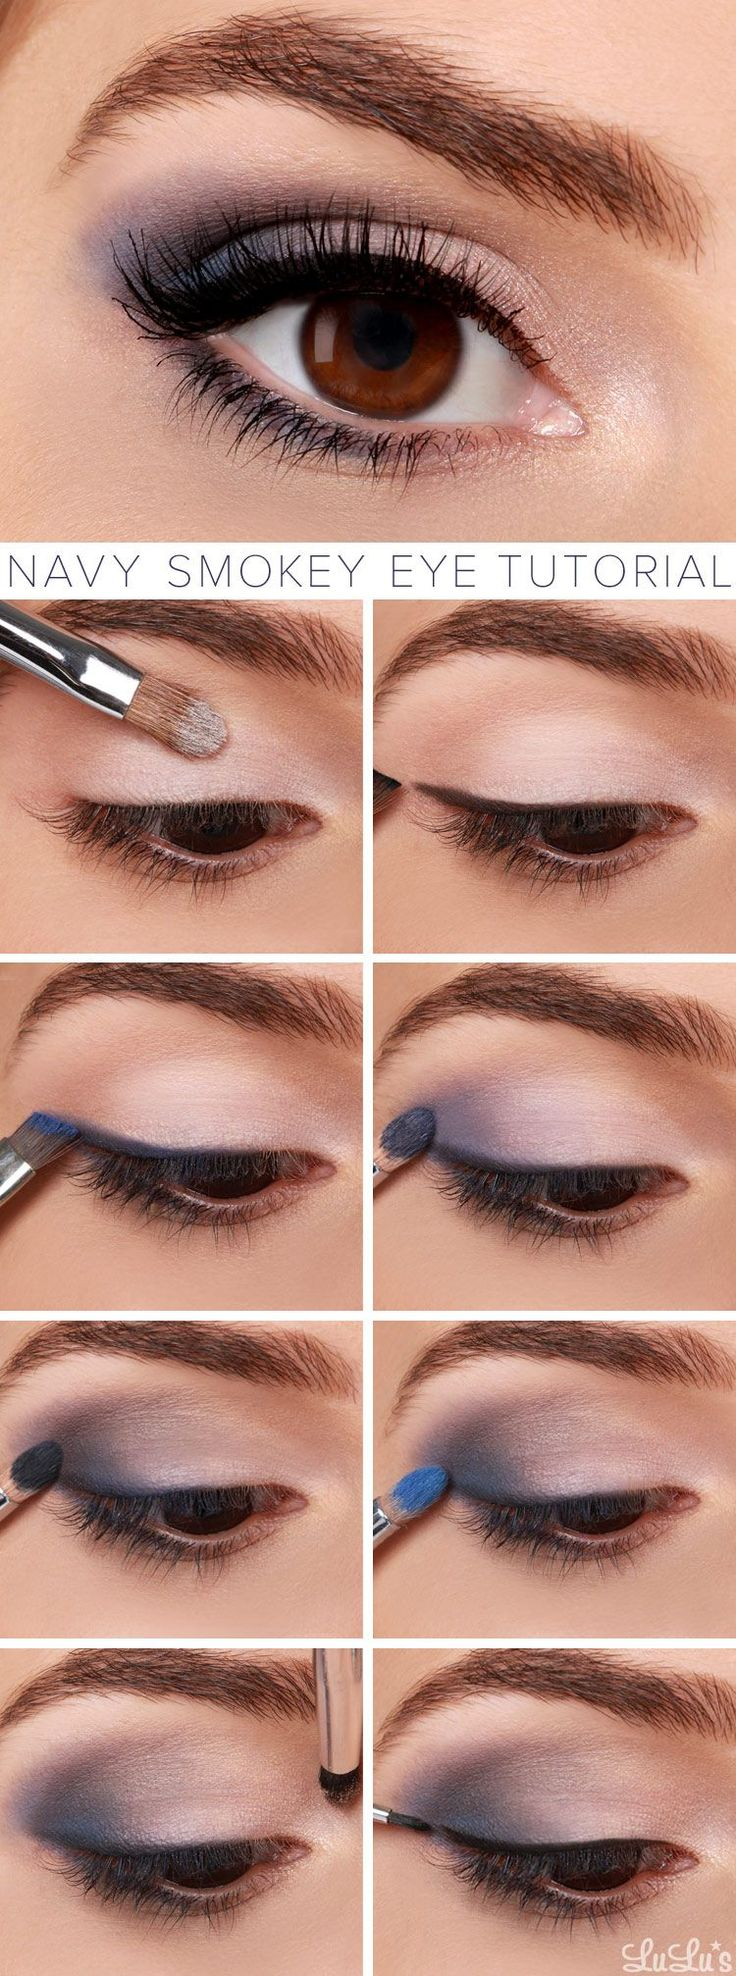 Navy Smokey Eye Makeup Tutorial!